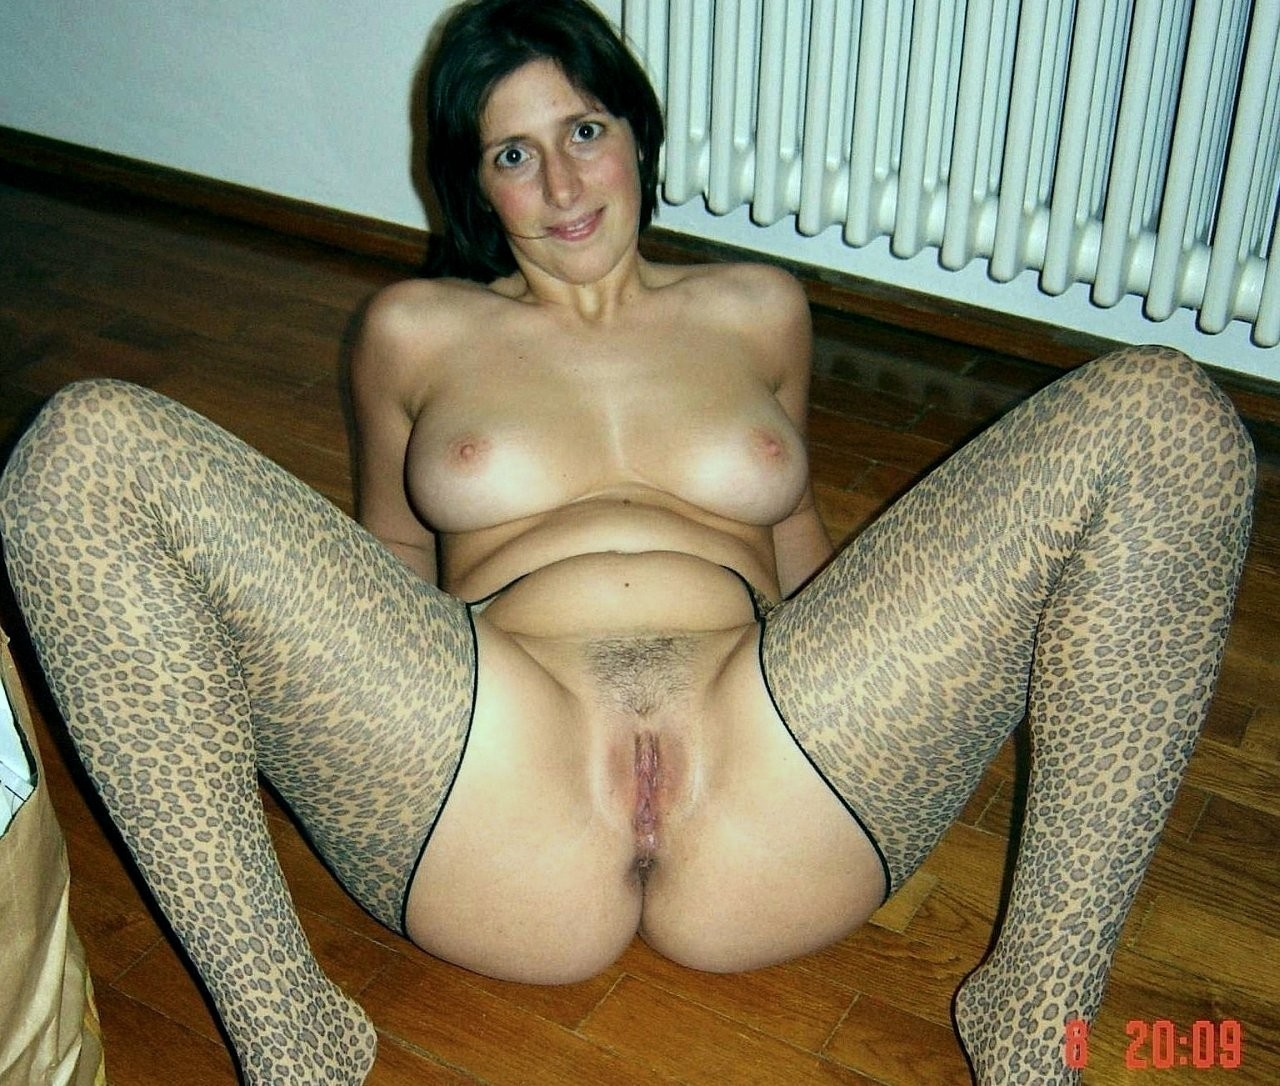 amature milf wife nude